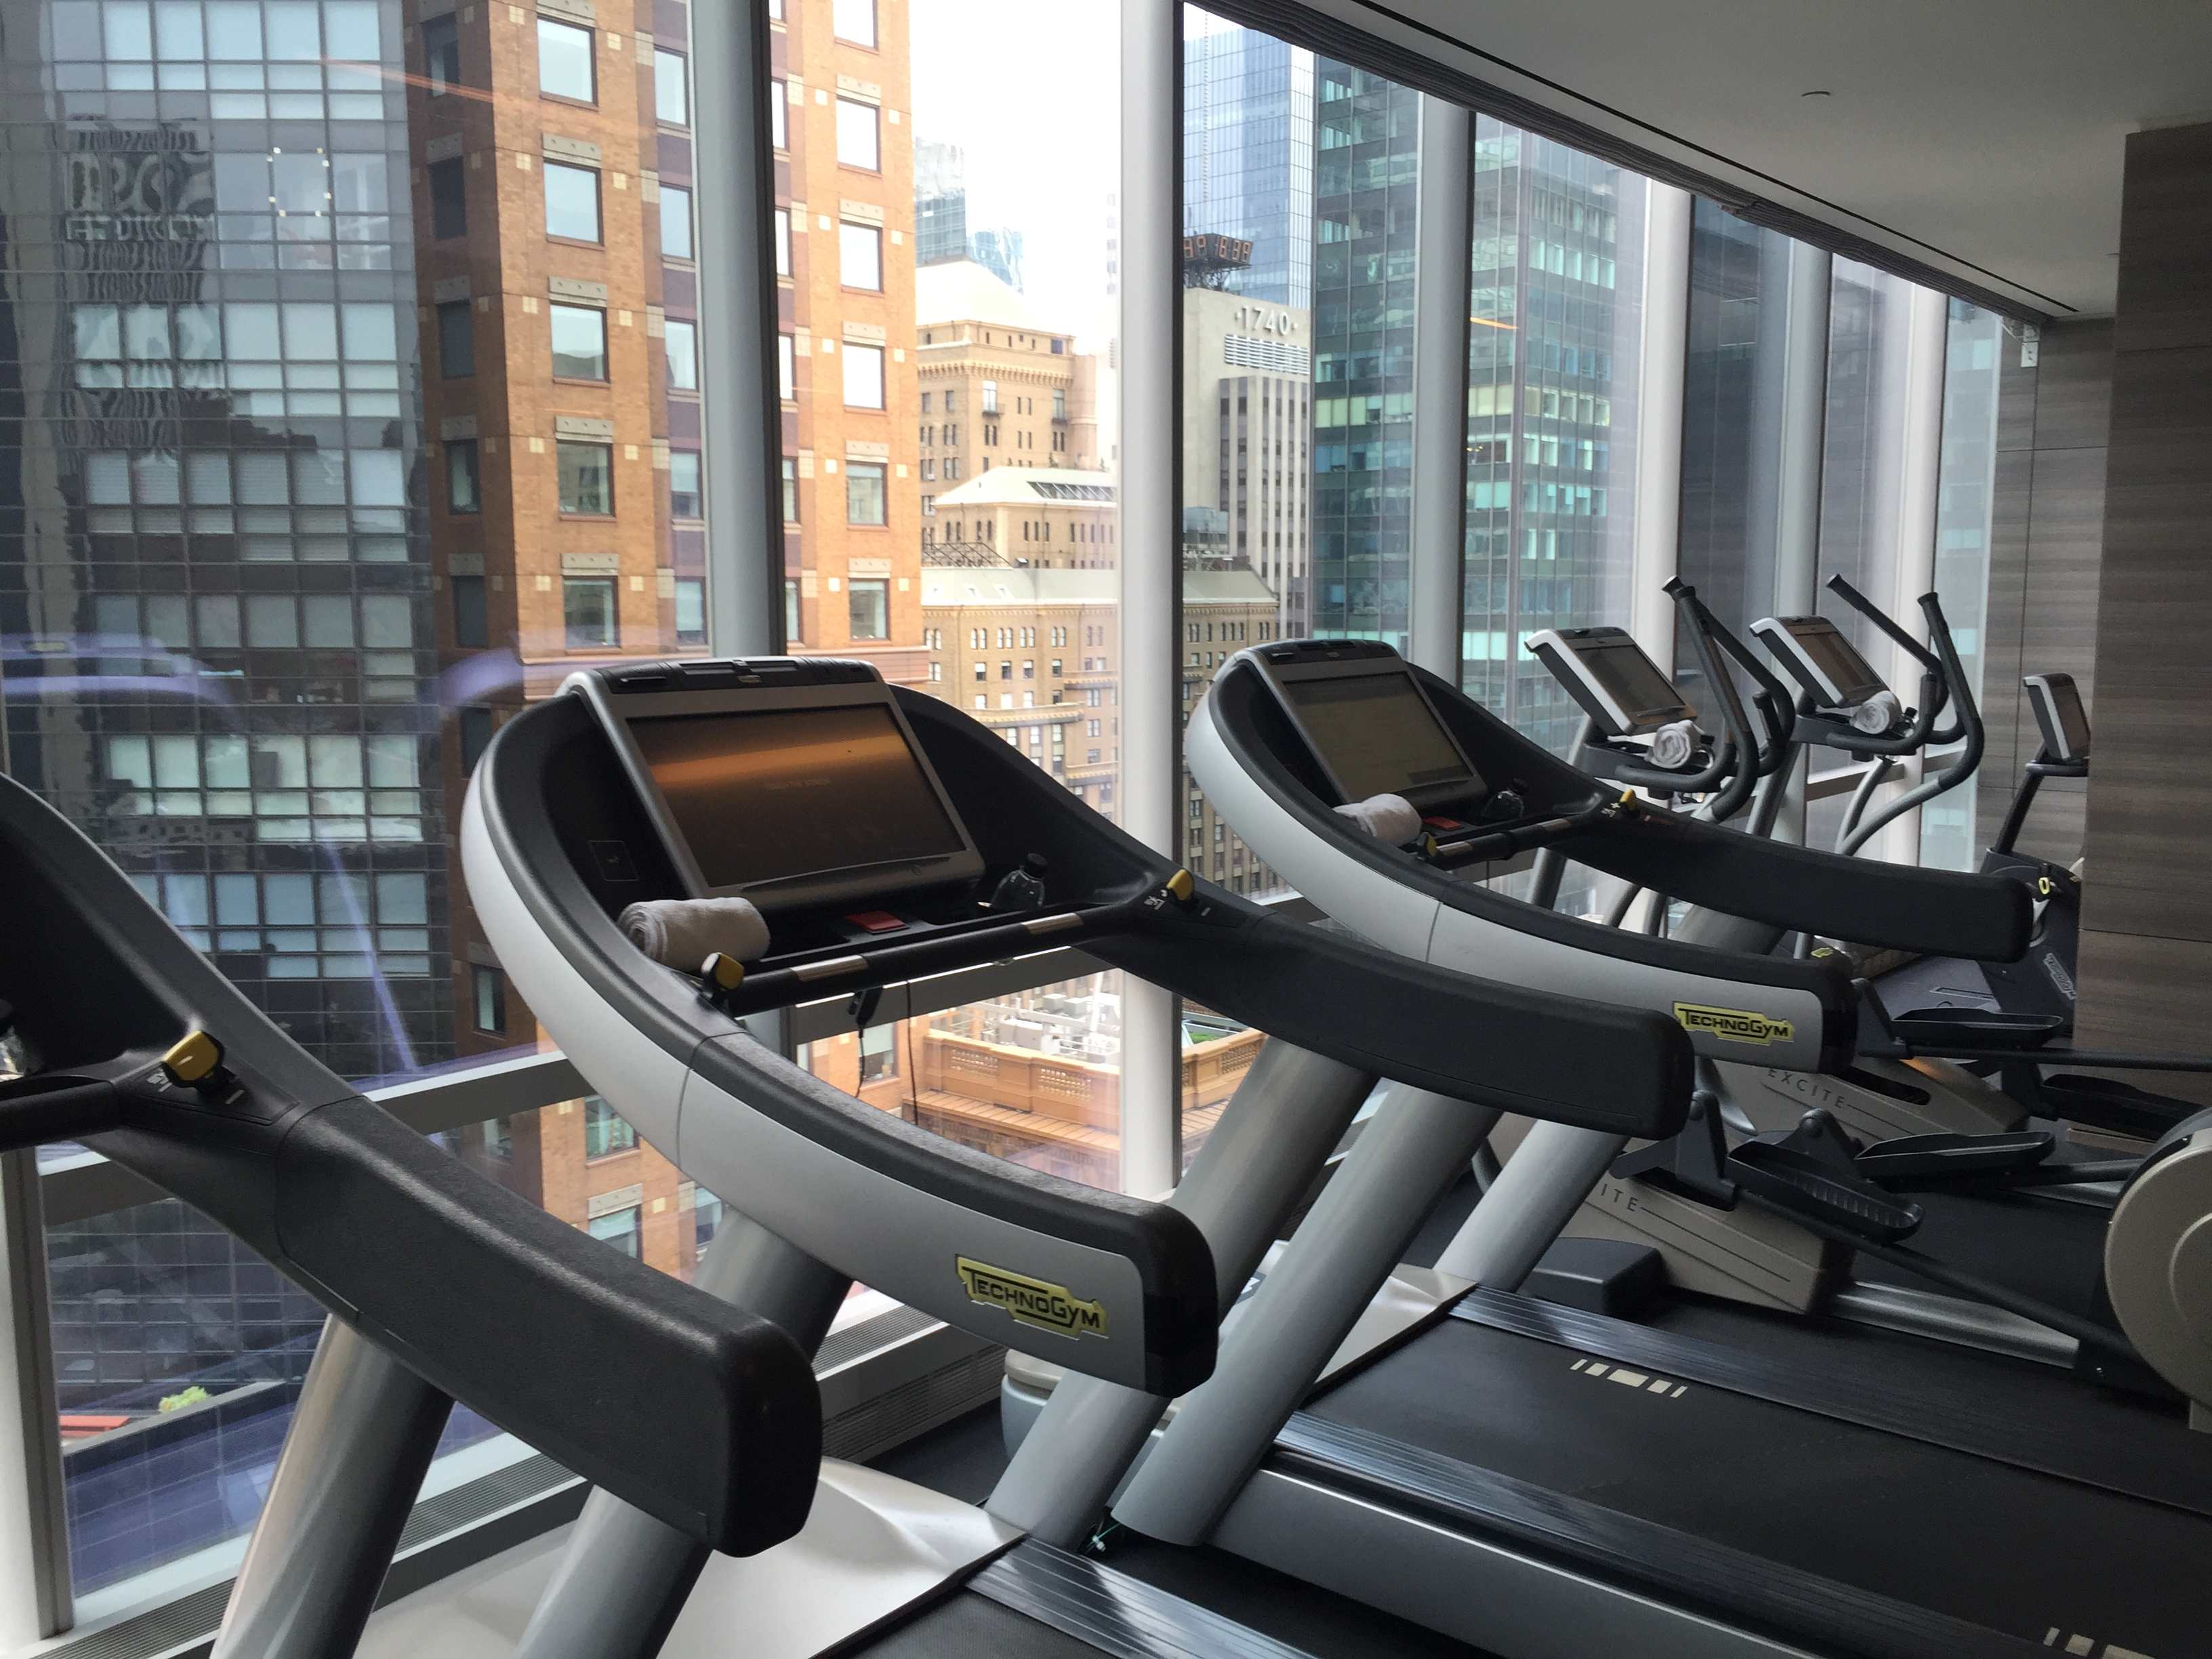 Park Hyatt New York Gym Treadmills